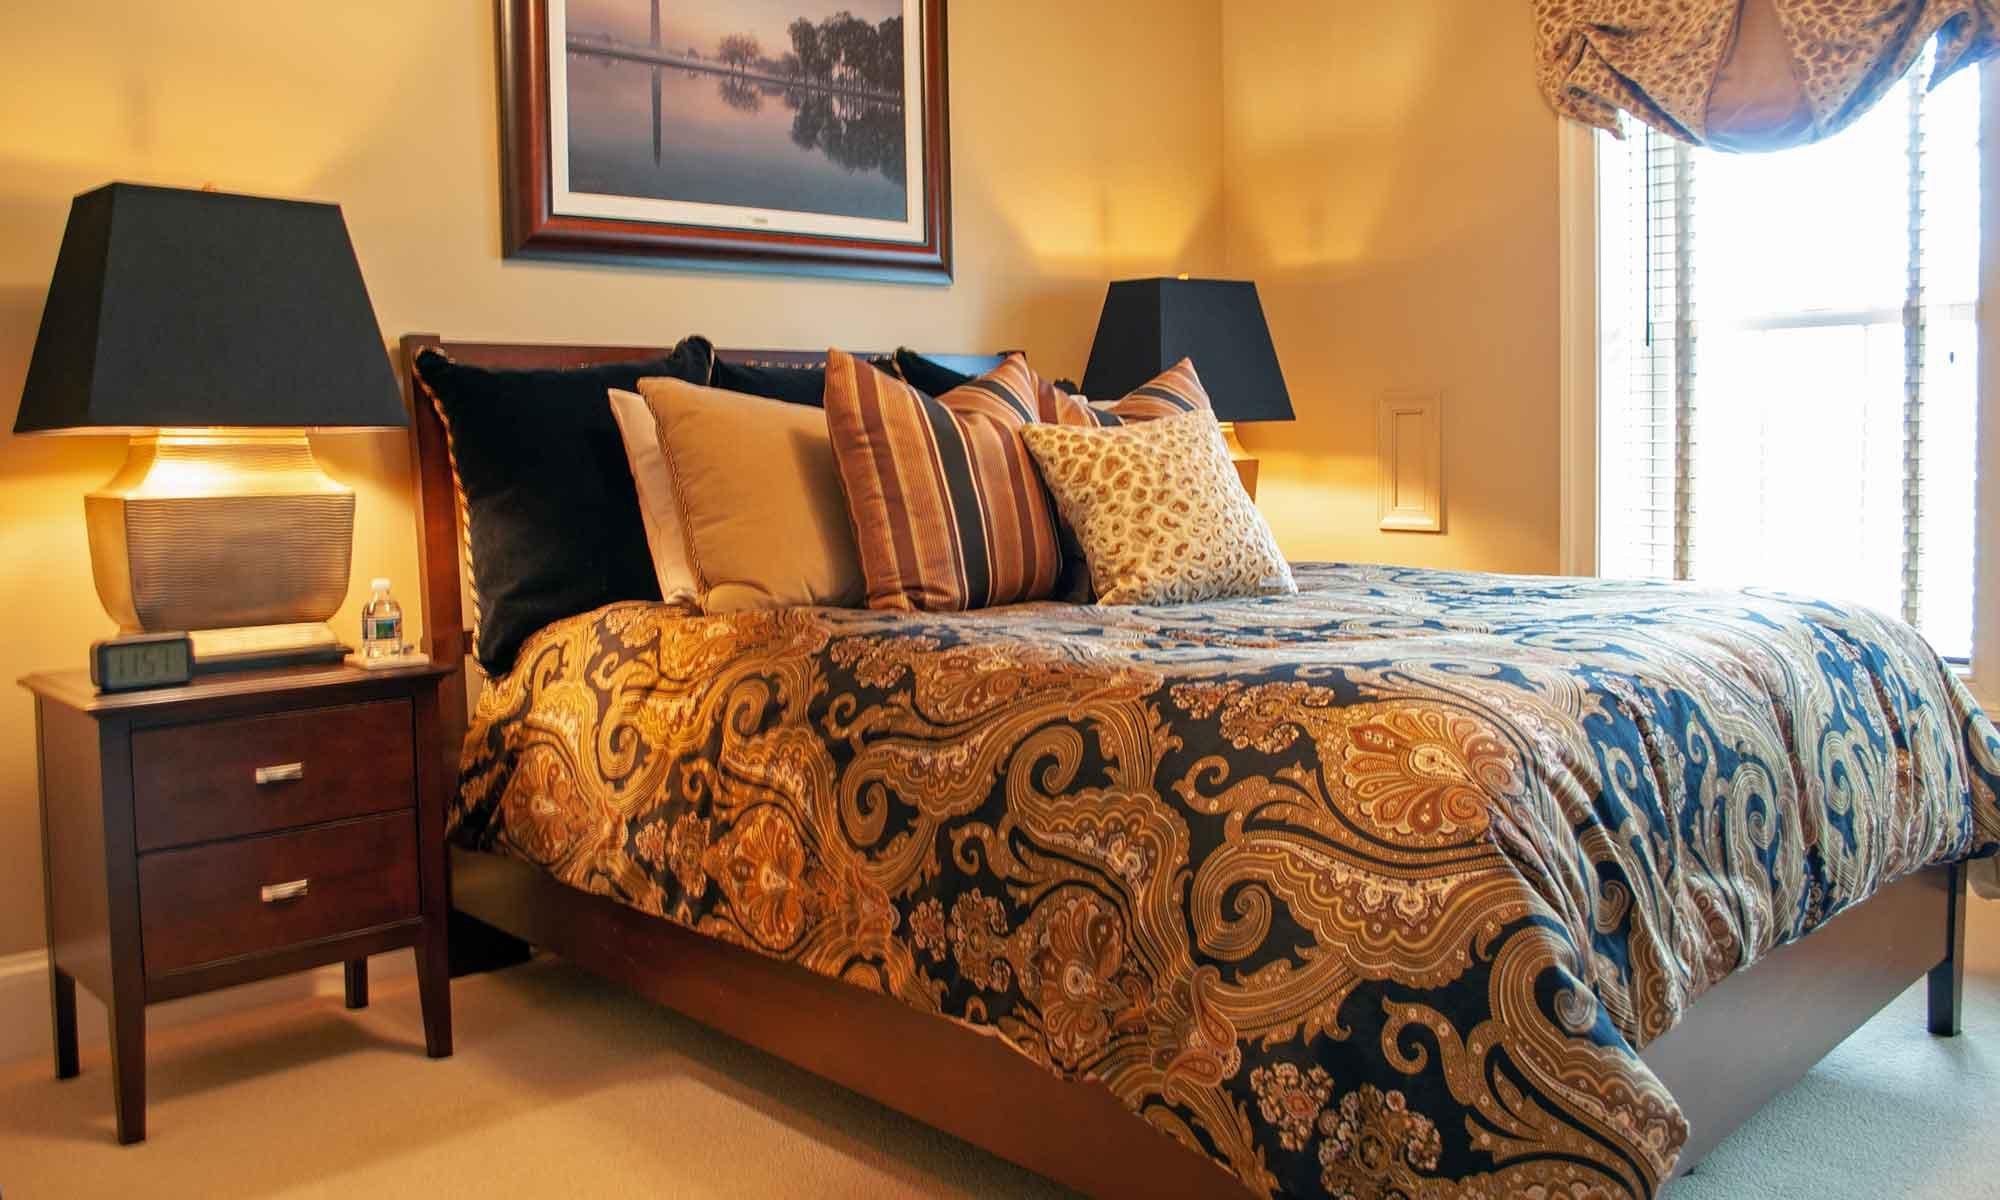 King bed next to window and bedside lamps